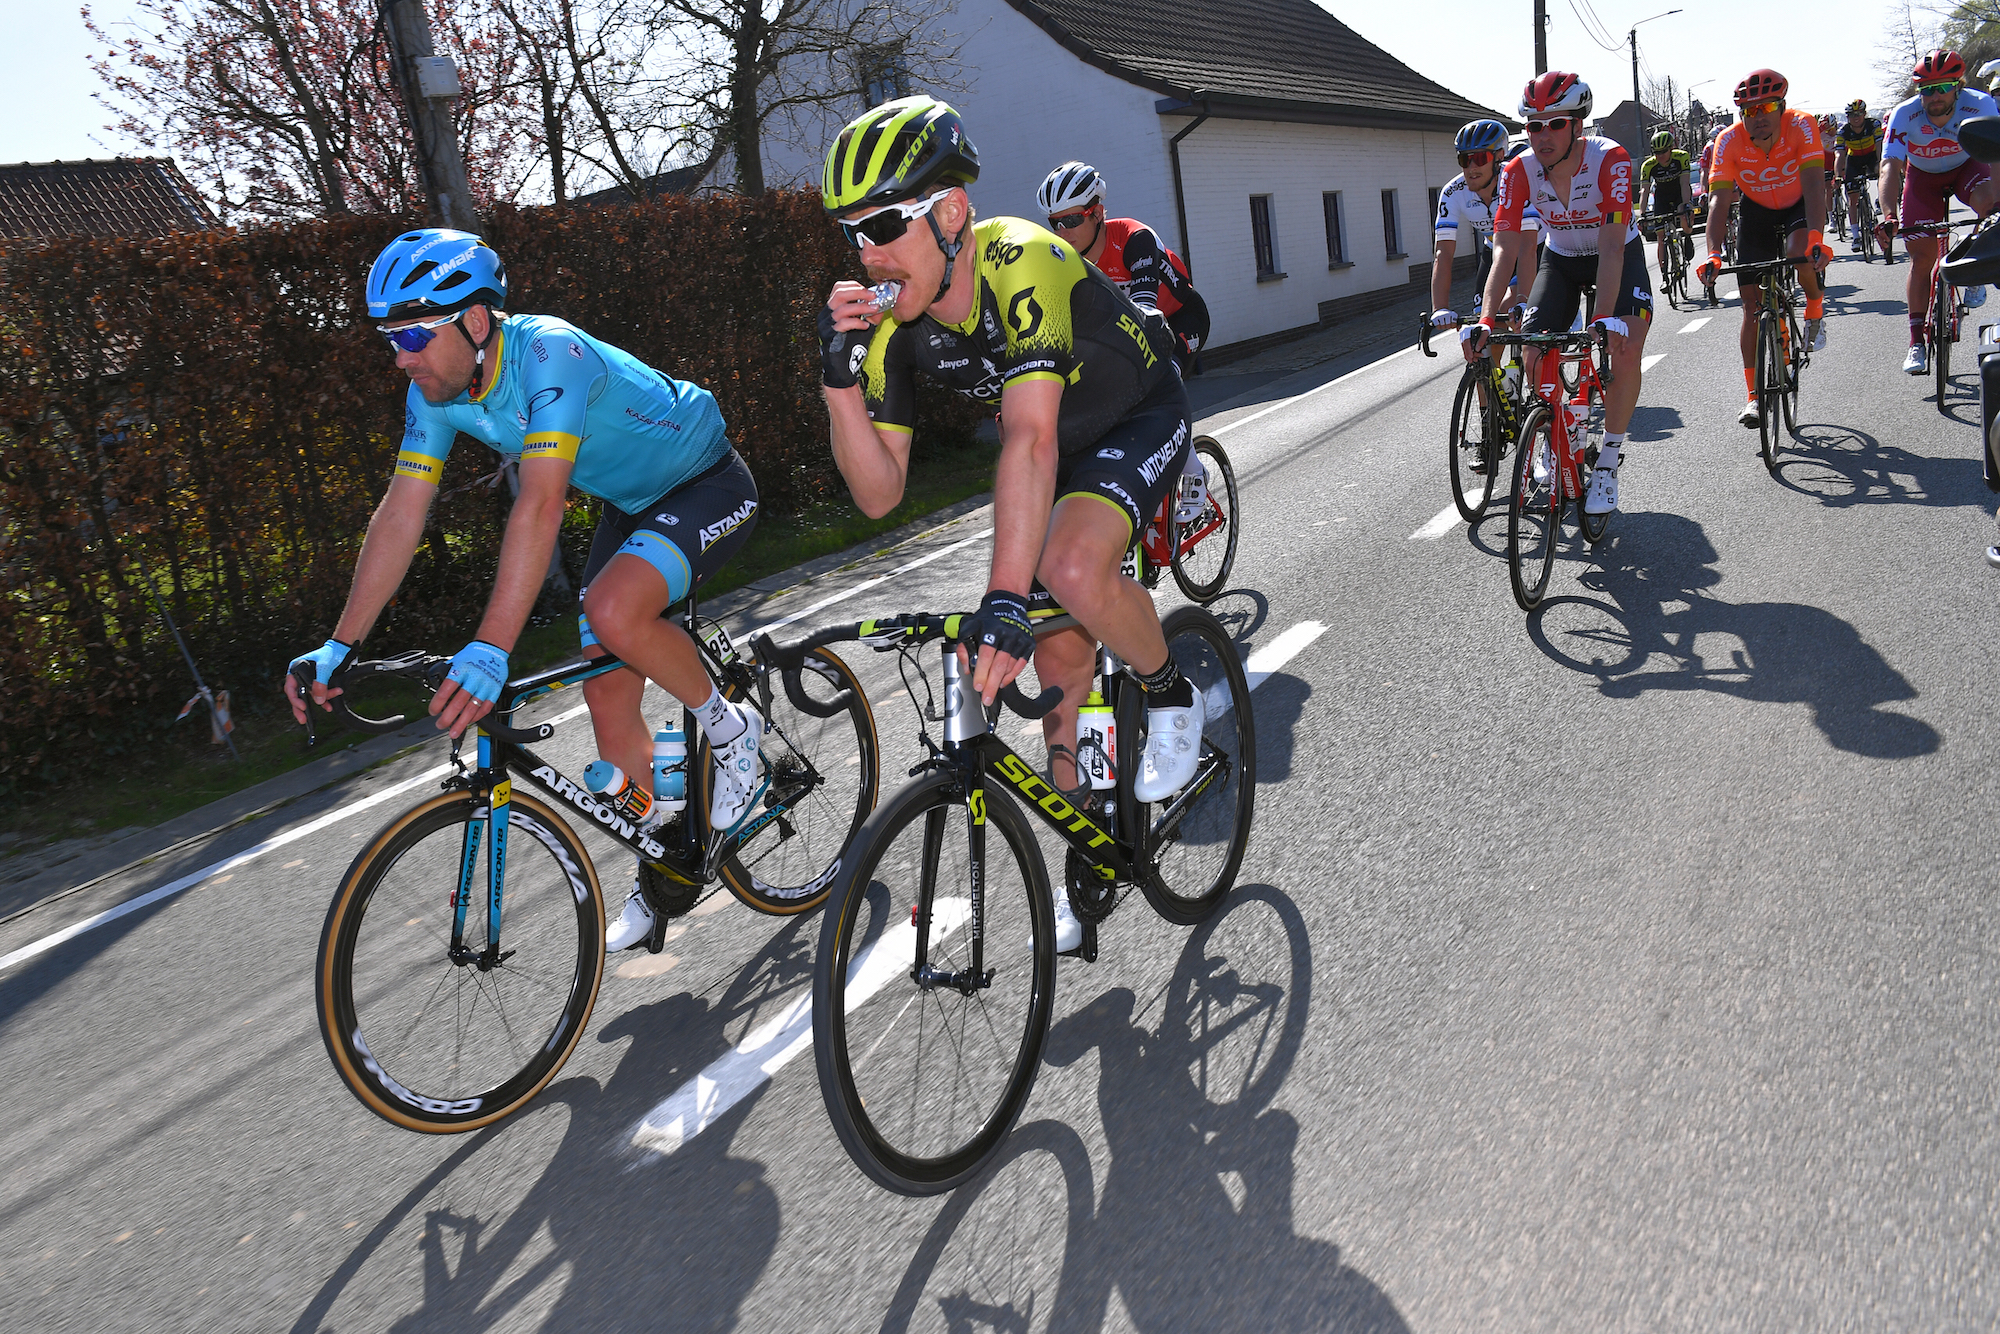 Study shows effects of under fuelling among pro cyclists during Classics period